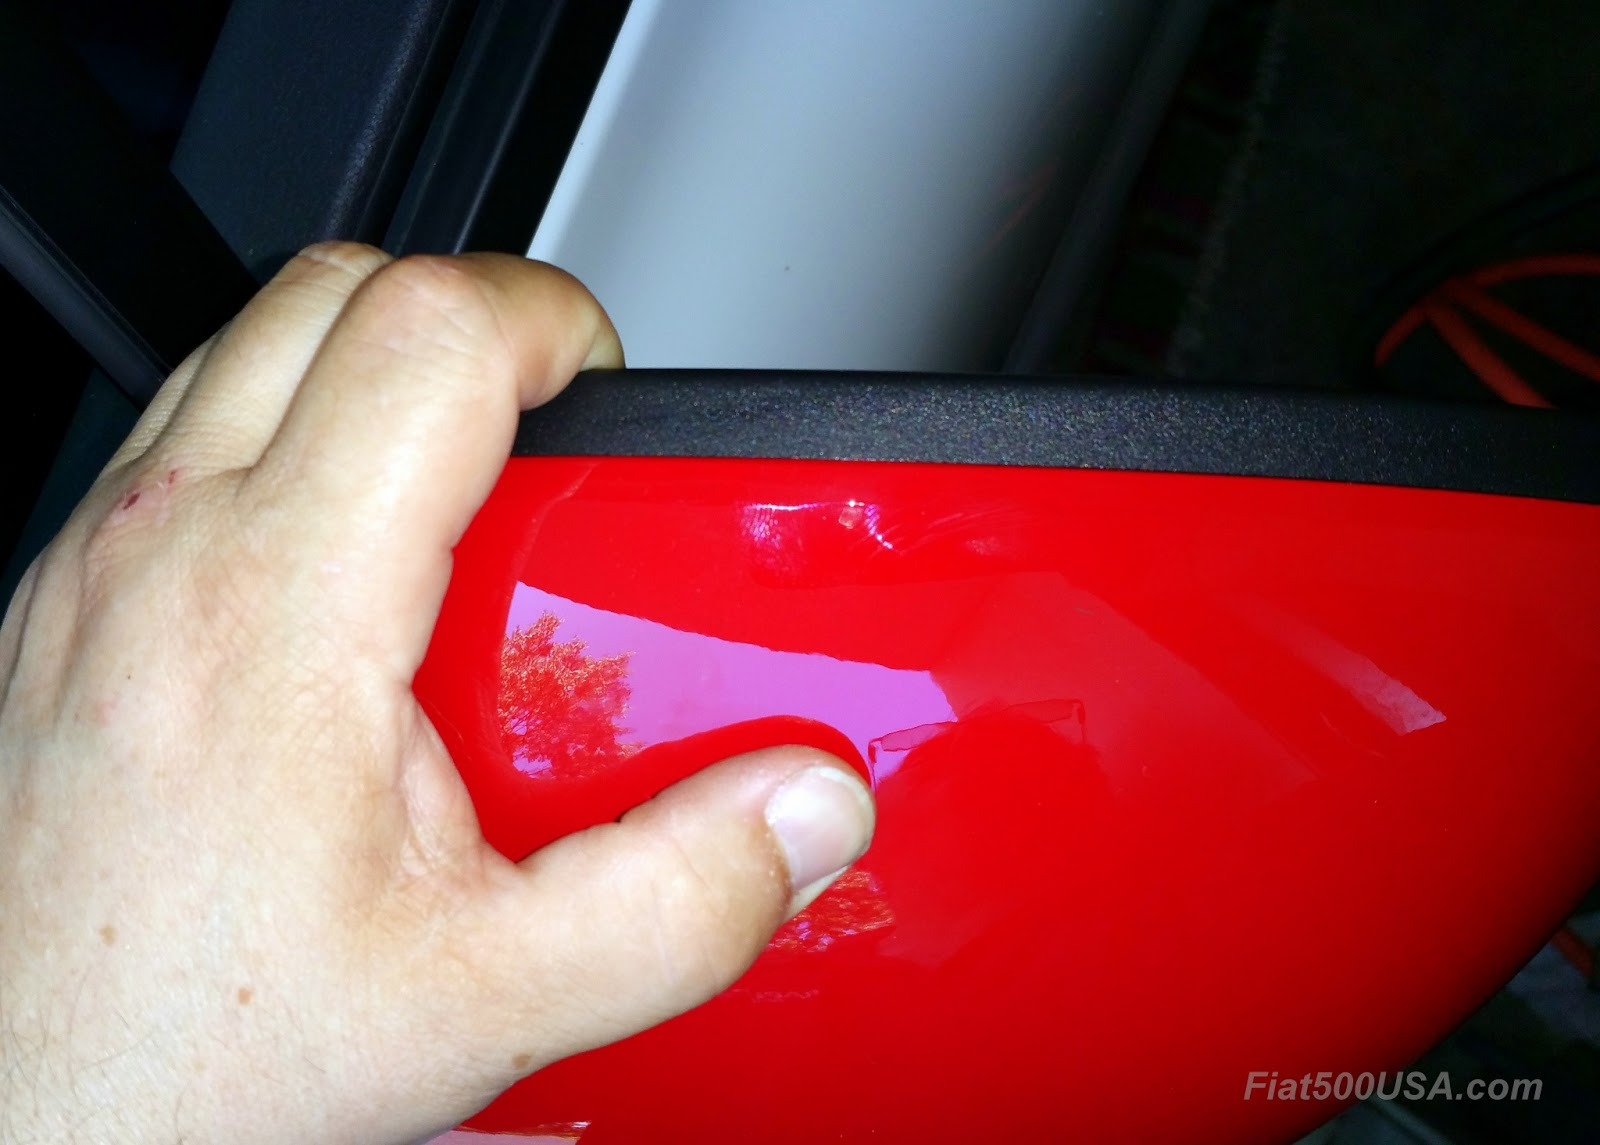 Fiat 500x Mirror Covers Install How To Fiat 500 Usa